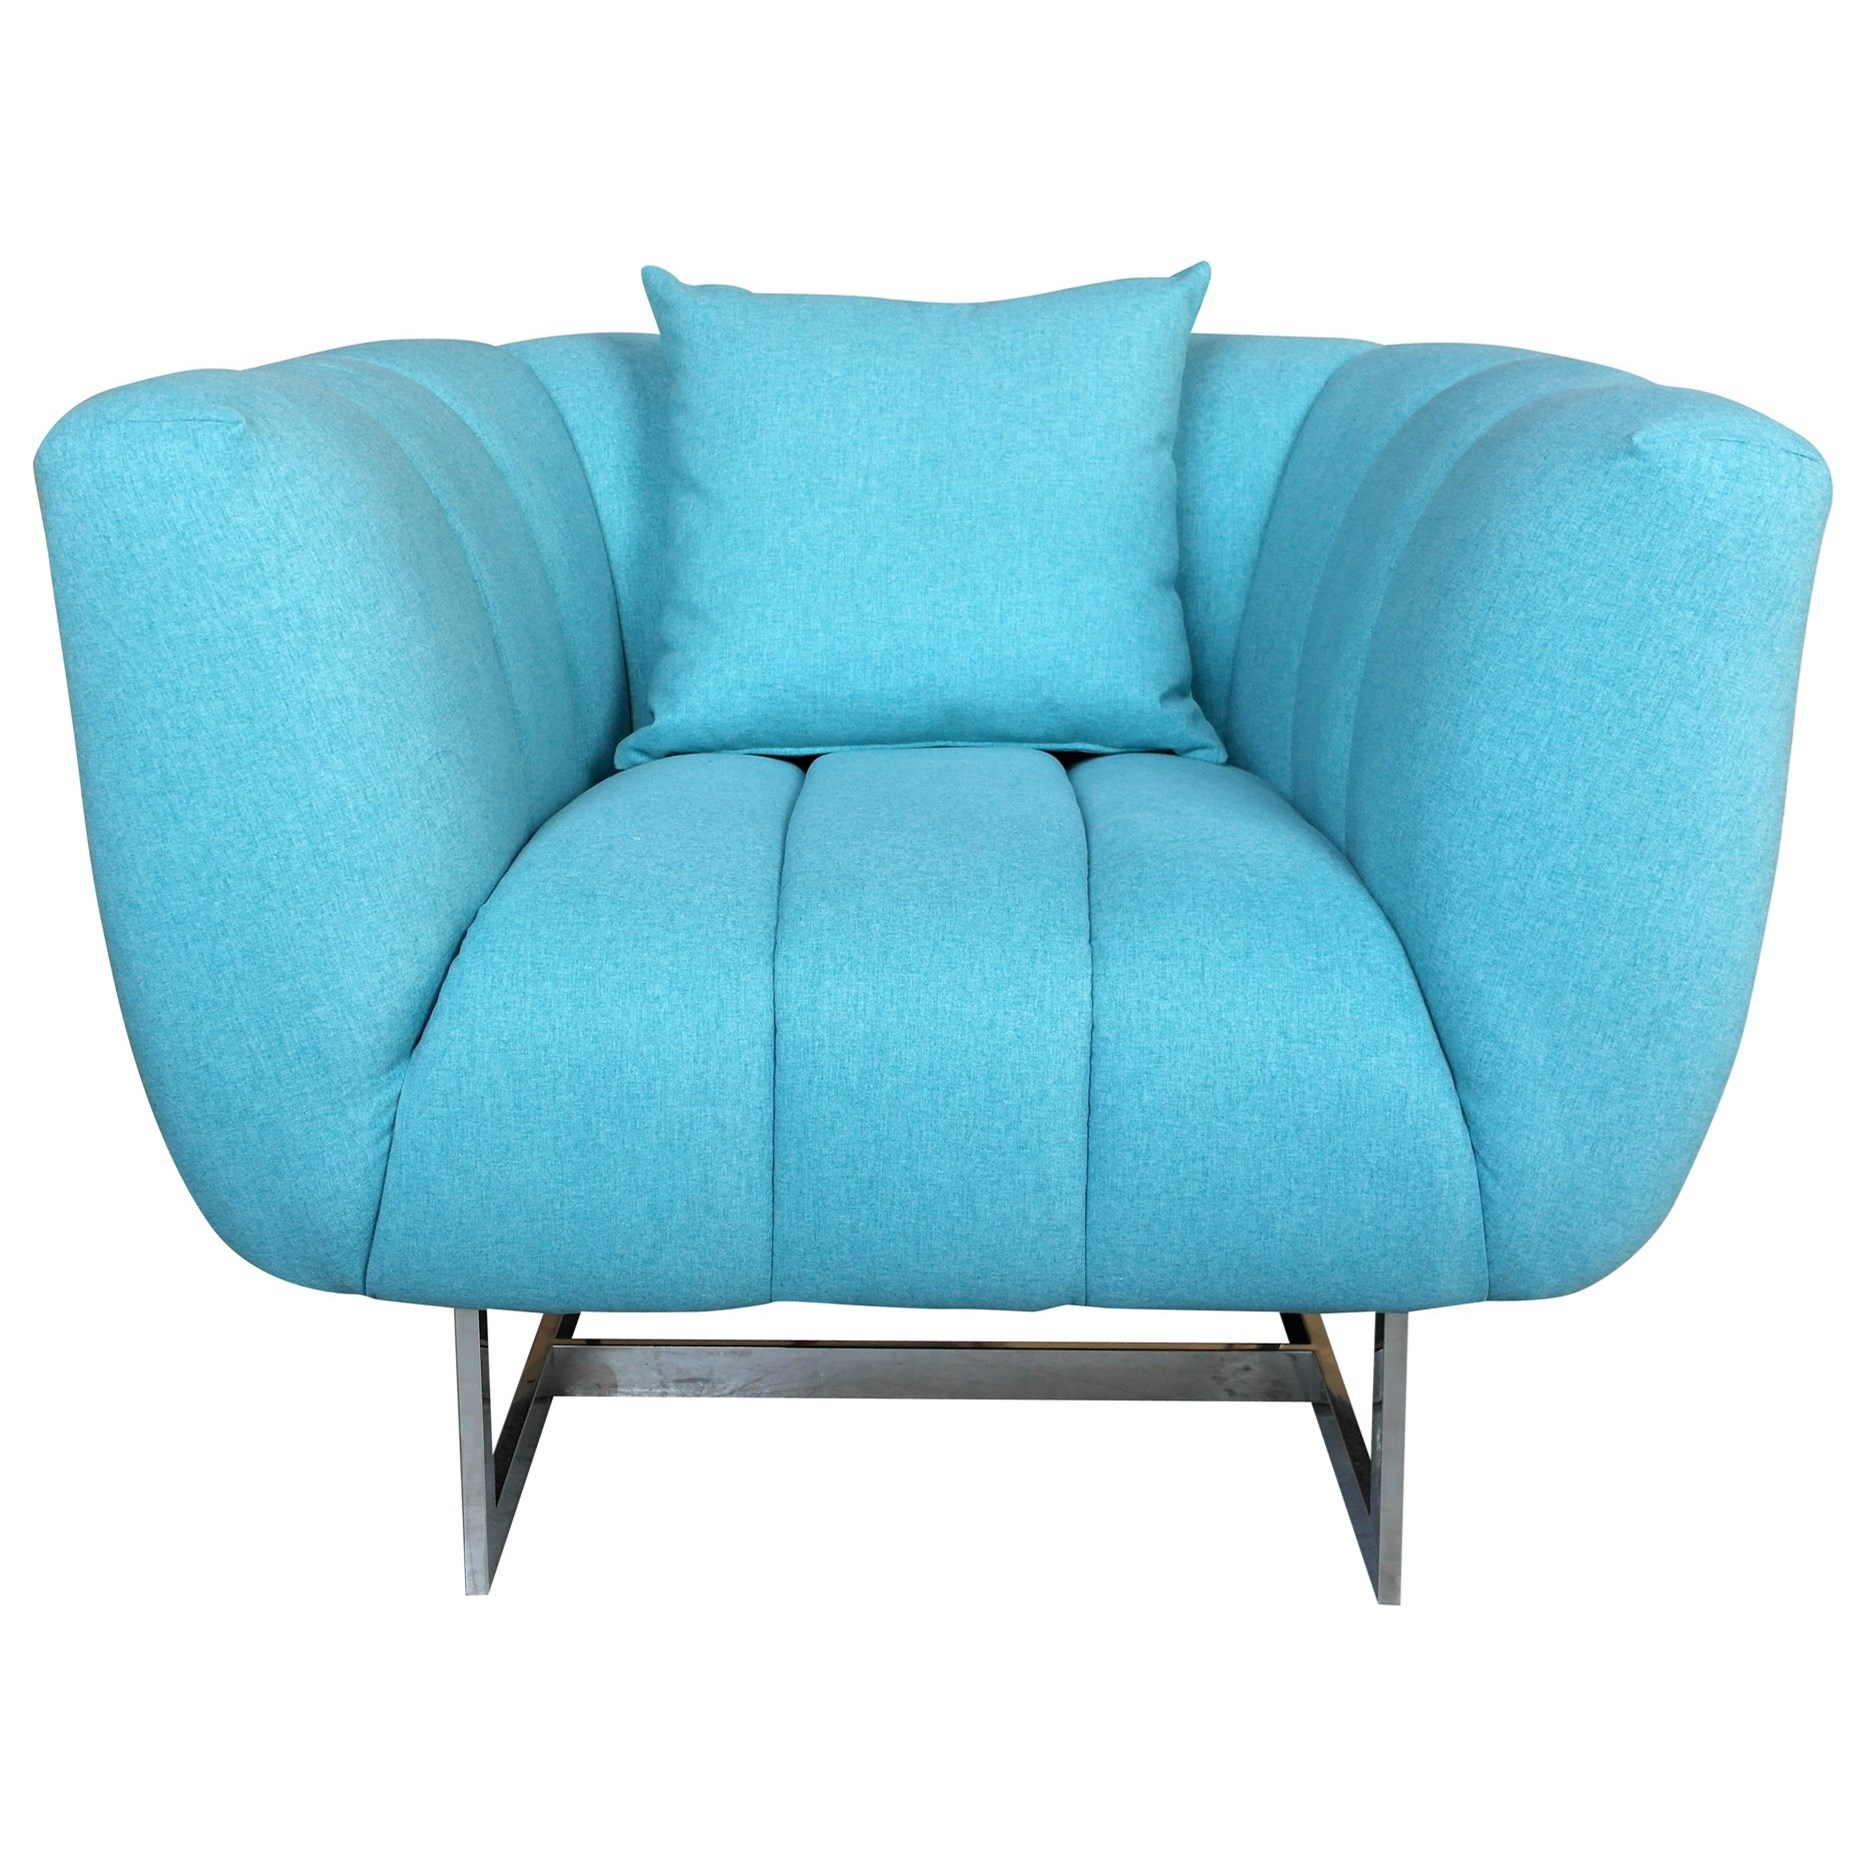 Channel-Tufted Arm Chair